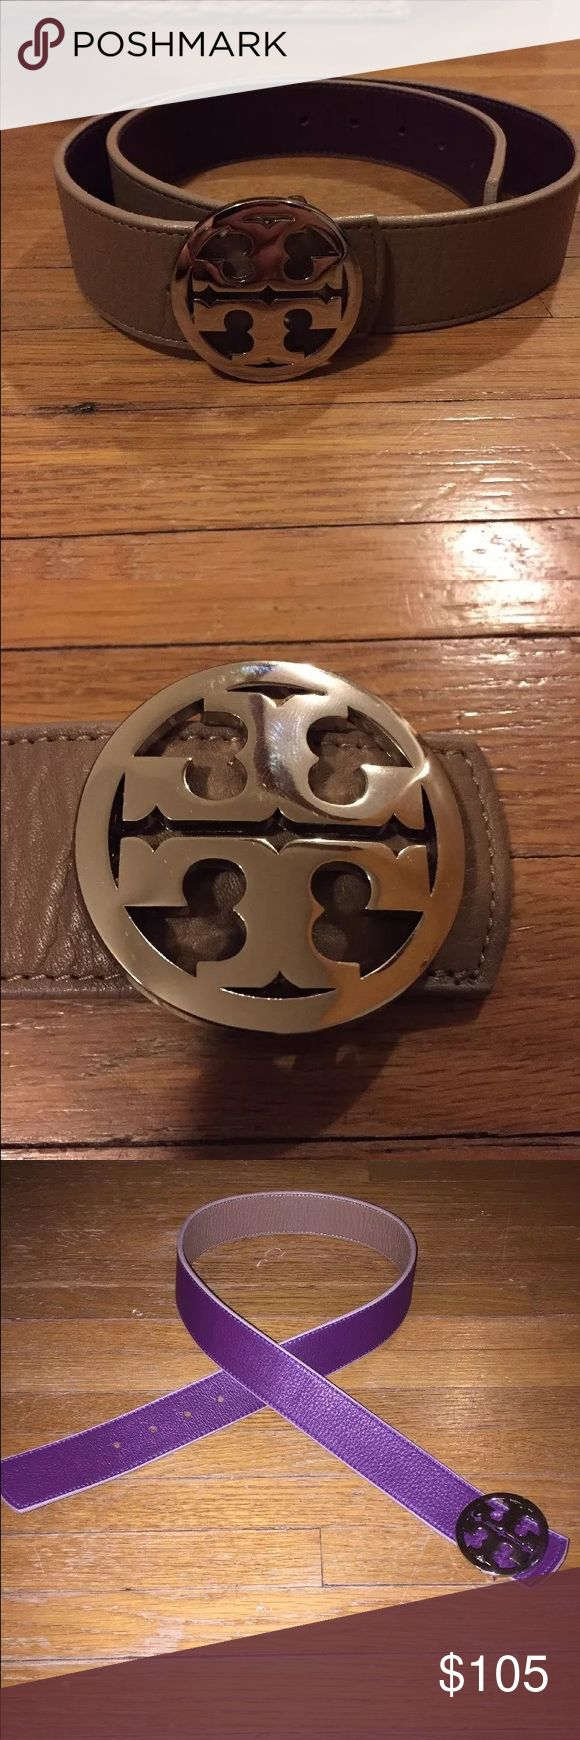 Tory Burch 2-toned purple/tan belt NWOT Sz Small Reversible - purple and tan. New without tags, never worn. NO NEGOTIATIONS OR TRADES. Silver buckle. Tory Burch Accessories Belts